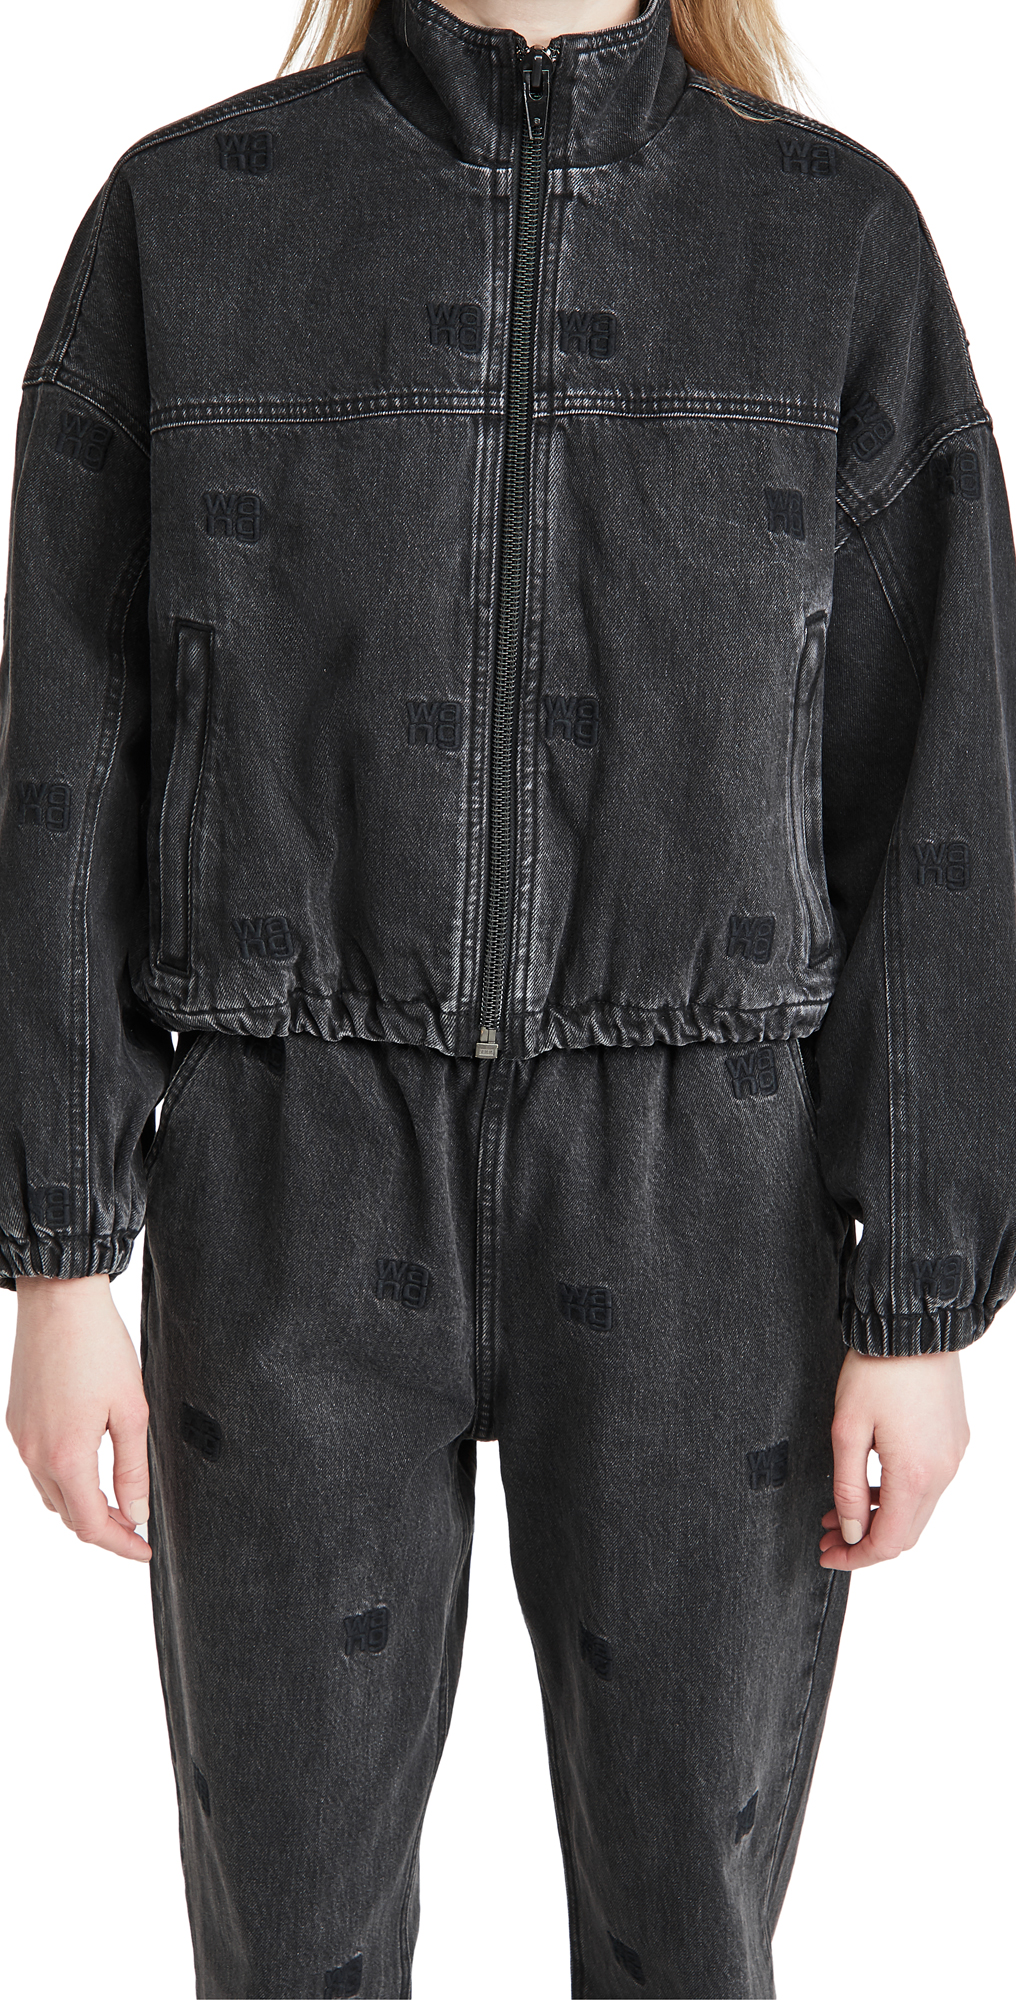 Denim x Alexander Wang Denim Track Jacket with Tonal Emblems